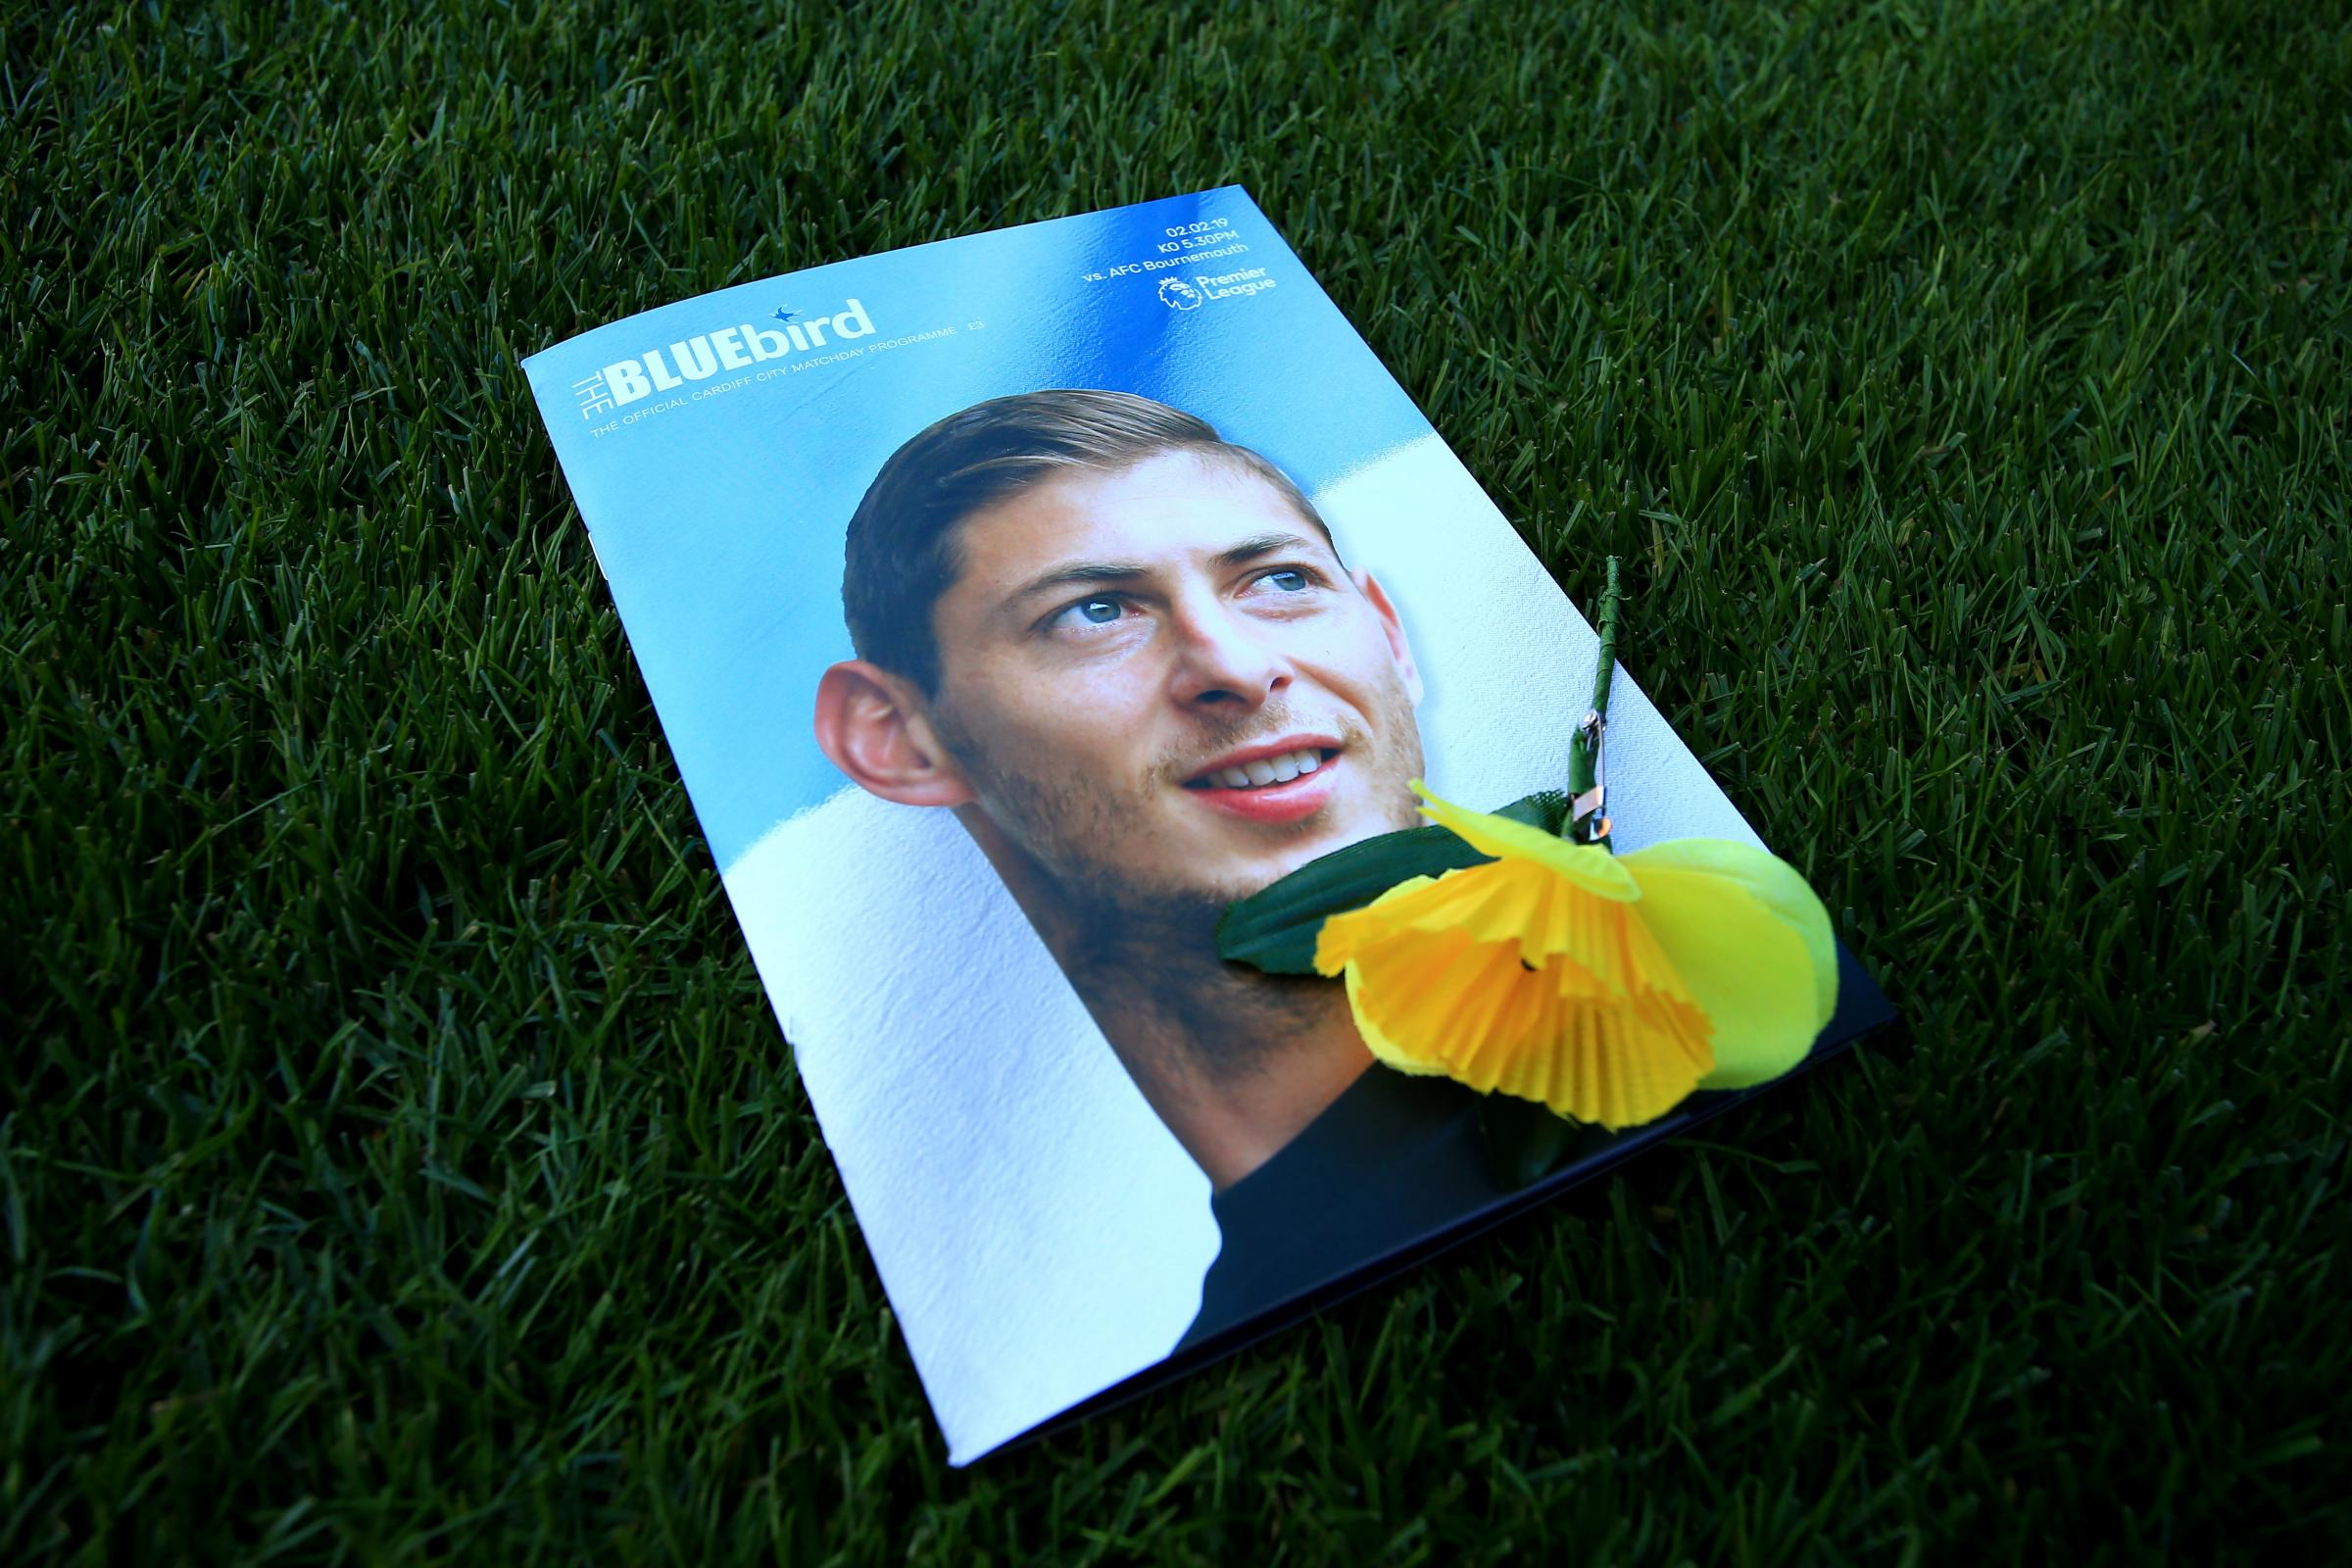 Cardiff striker Emiliano Sala's funeral will be held in Argentina on Saturday